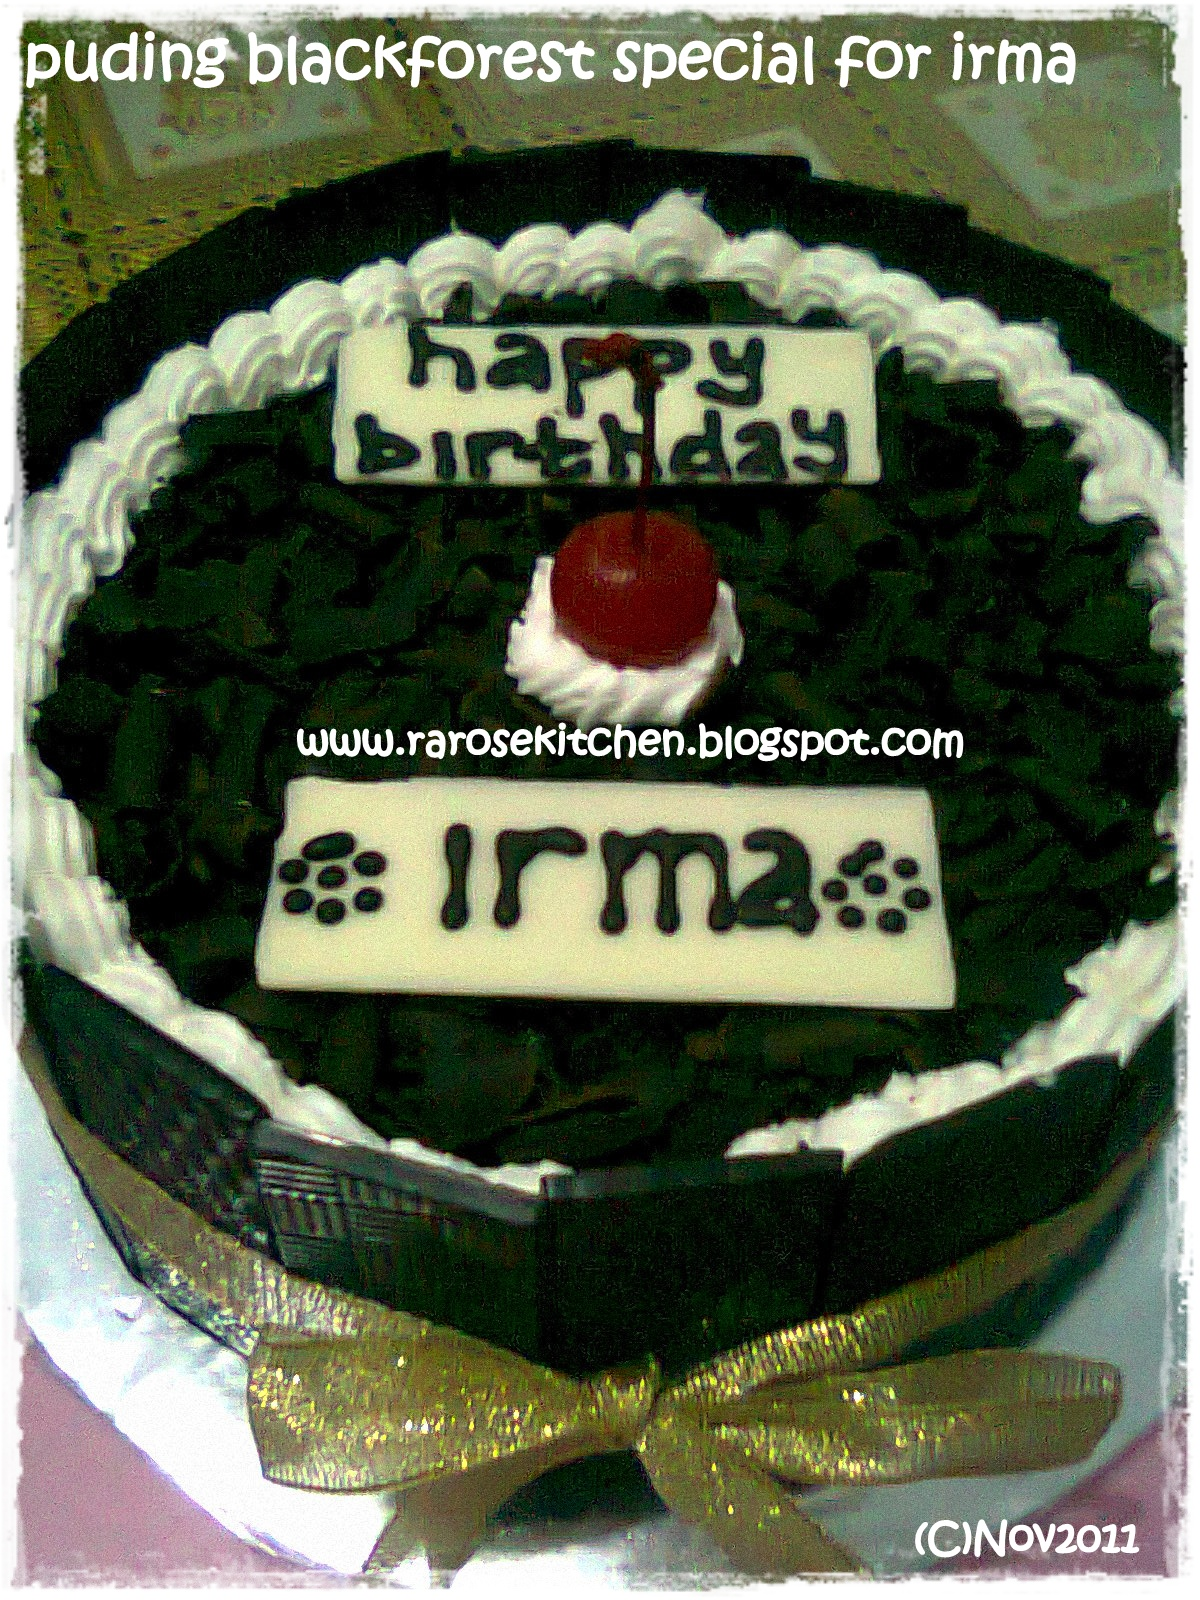 Puding Blackforest special for Irma b'day